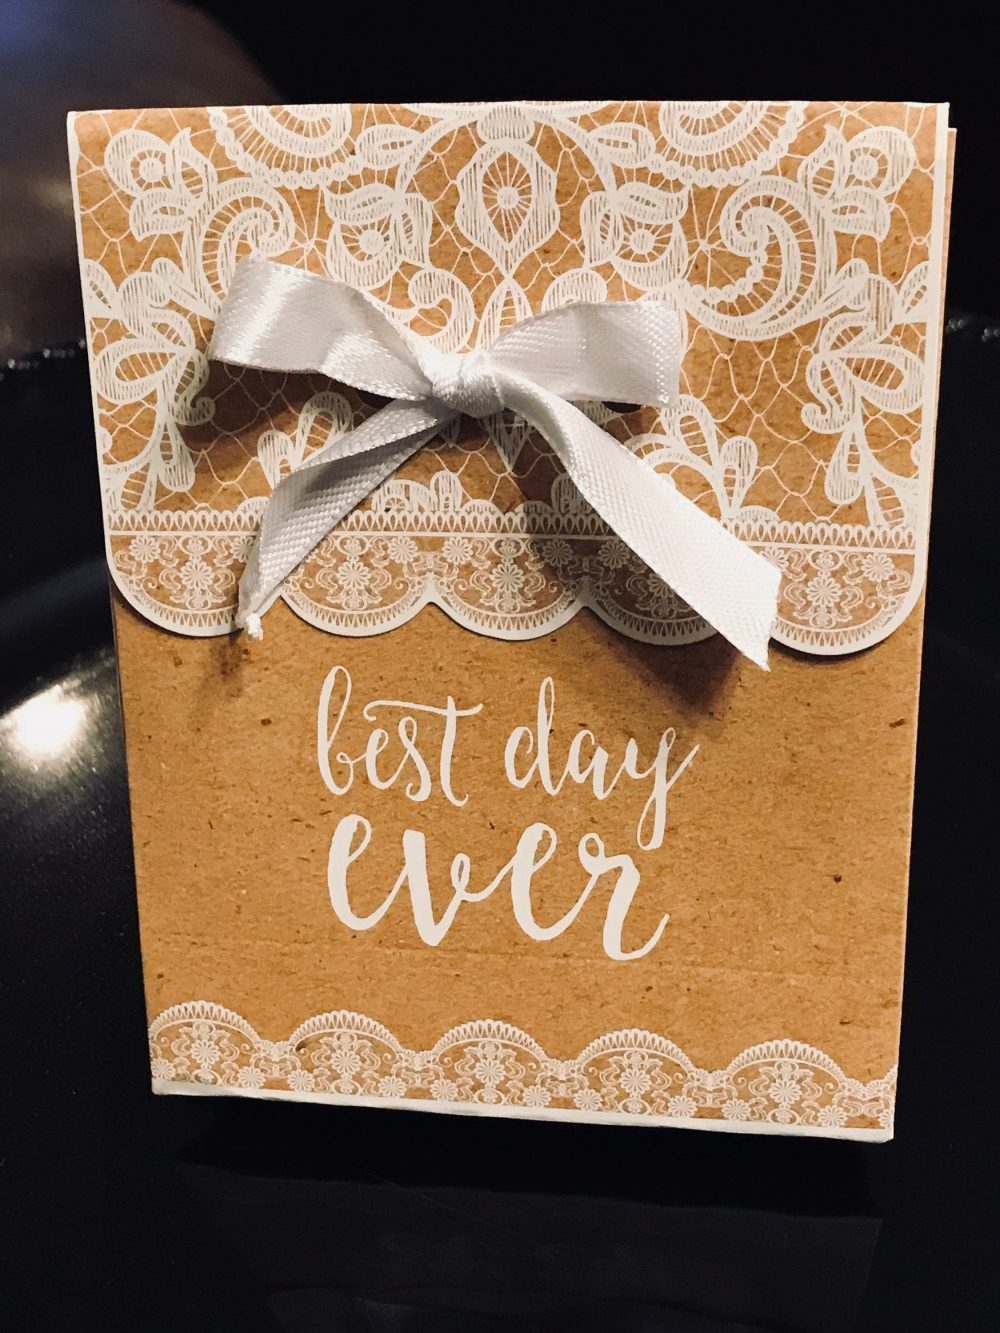 "12 Favor Boxes, Treat Boxes With Ribbons, Lace & Scalloped Cardstock Paper, Perfect For Weddings ""Best Day Ever"" Printed On Box"